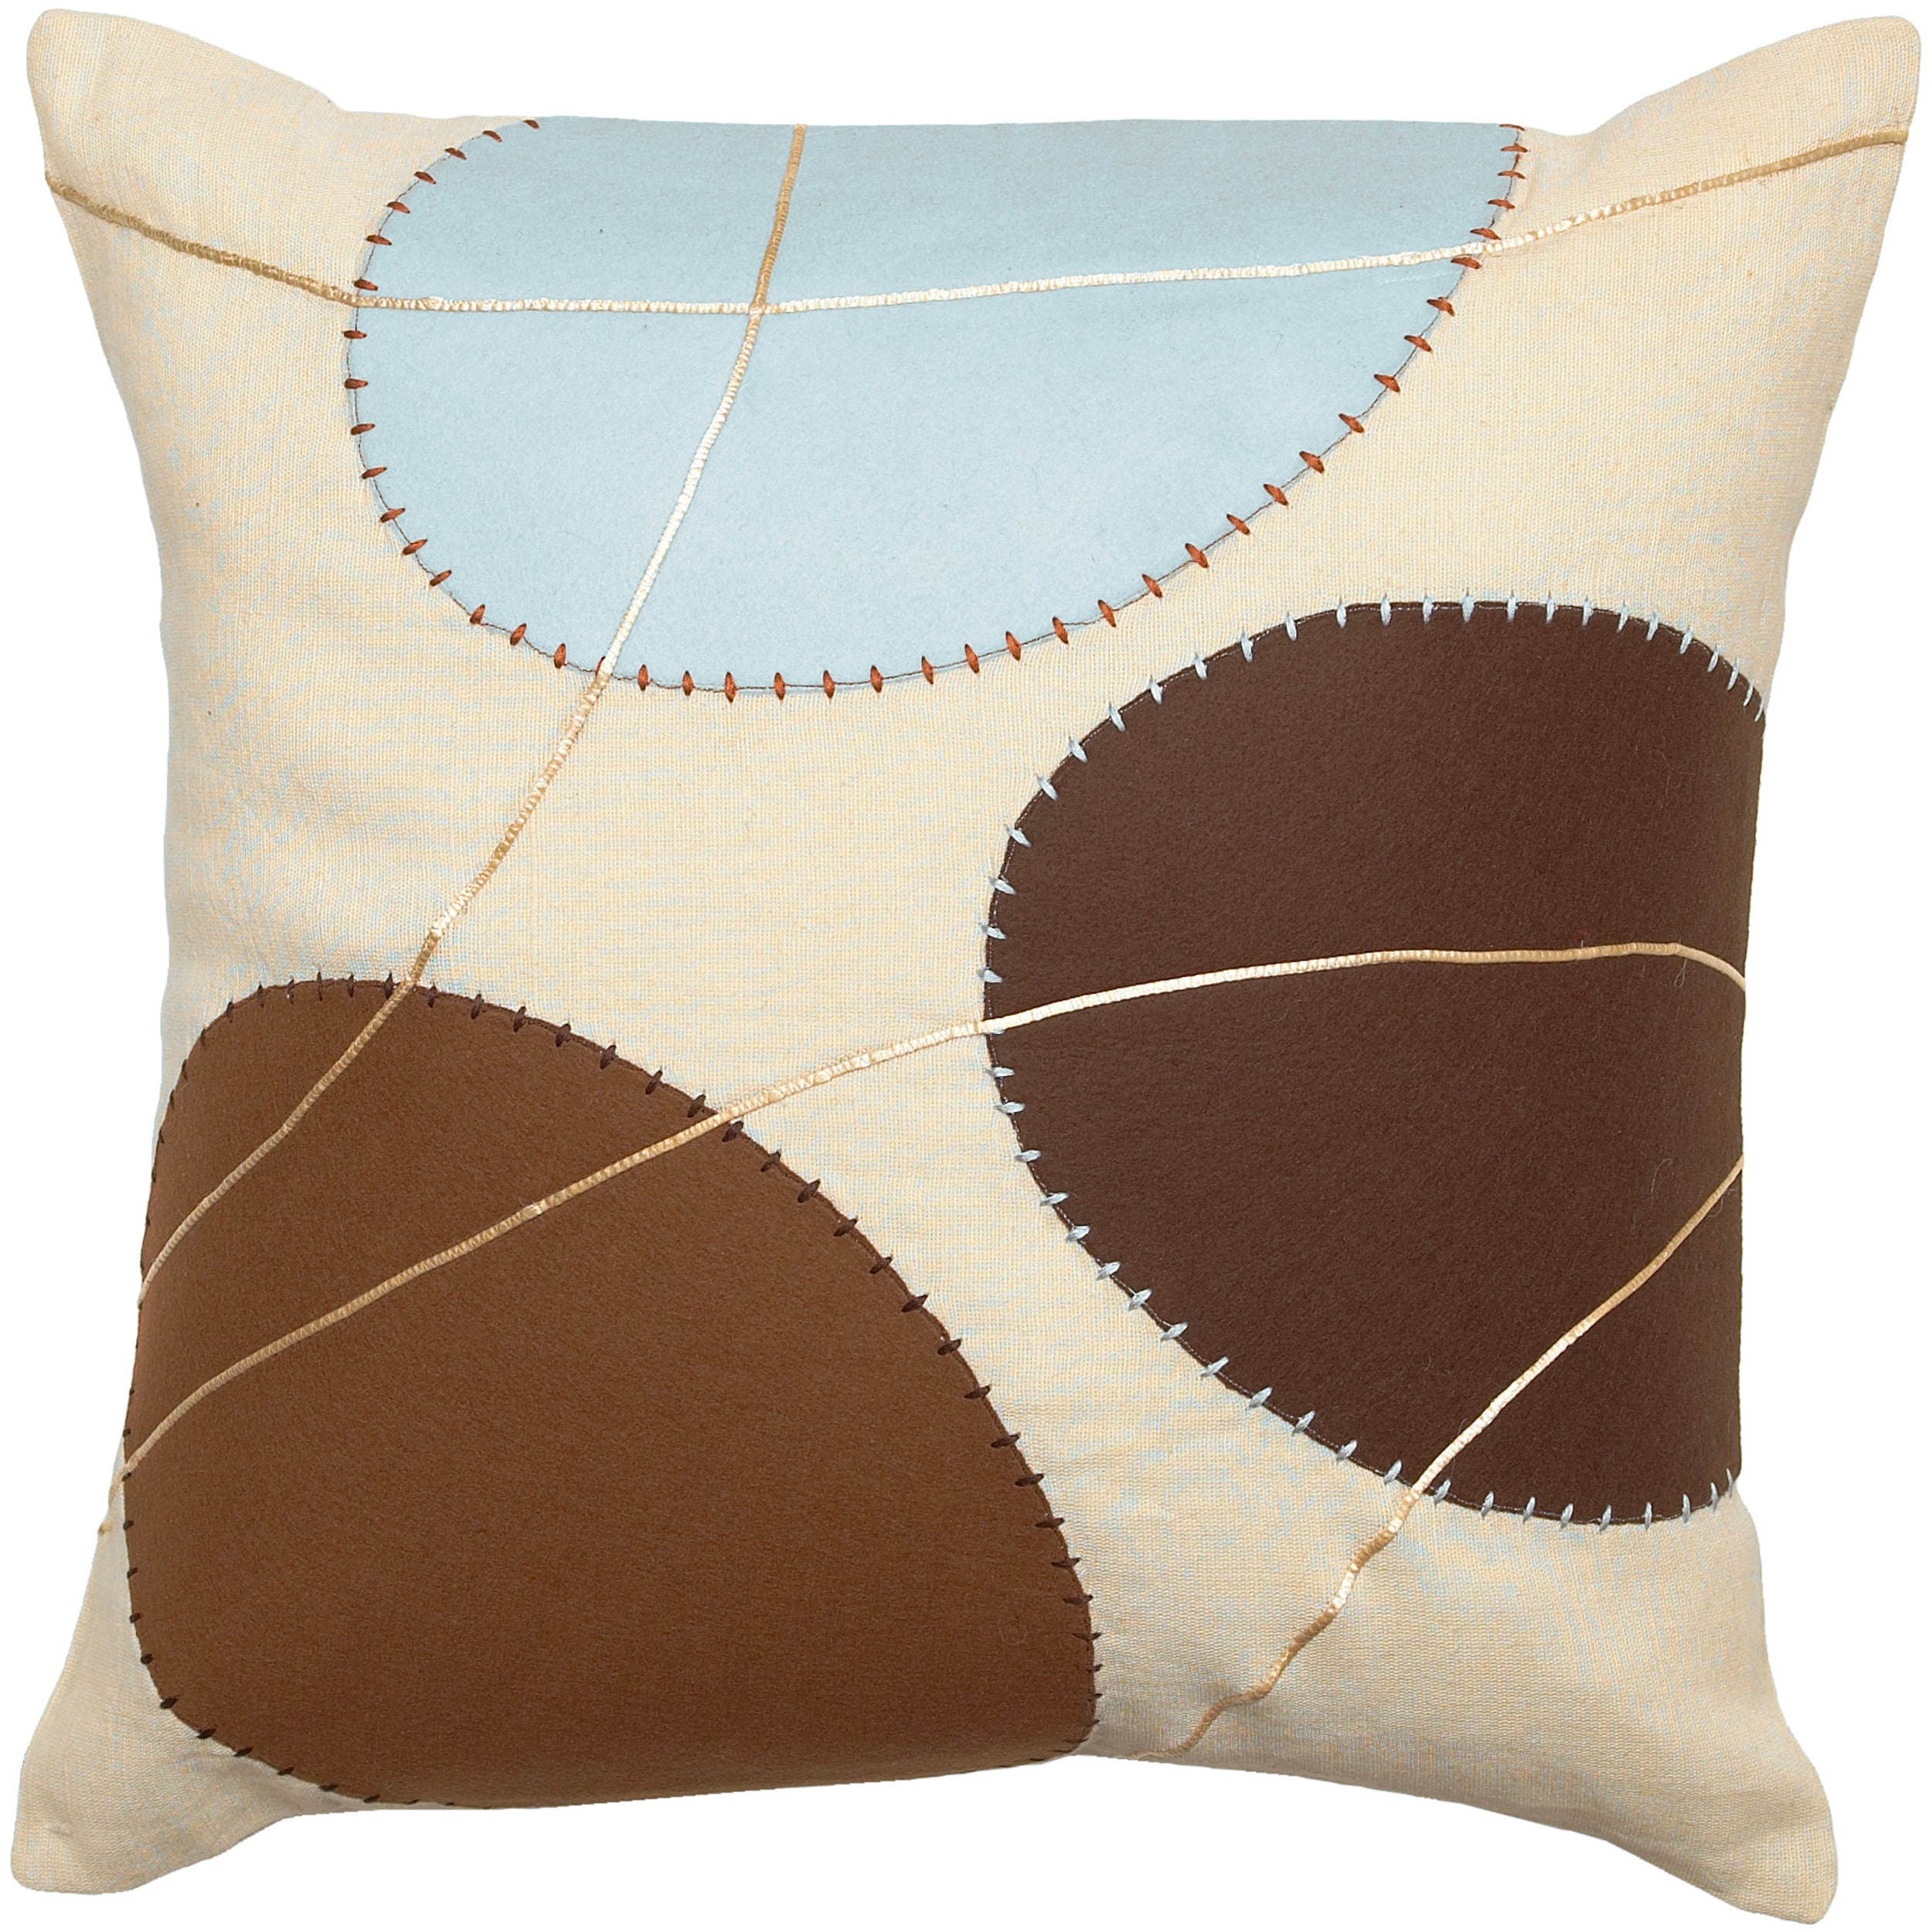 Decorative Albany Pillow